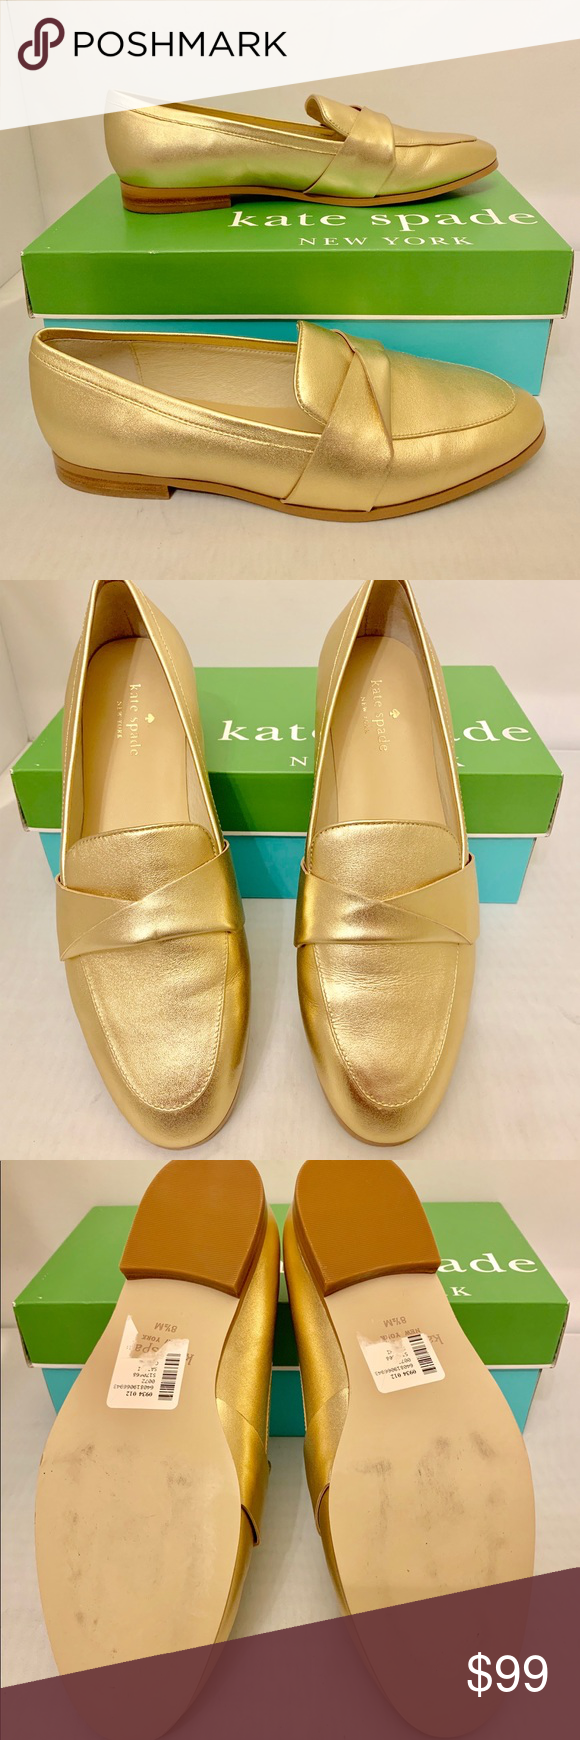 5765eec4924 Kate Spade Satchi Metallic Gold Loafers Gold metallic leather uppers.  Classic slip on Loafer style